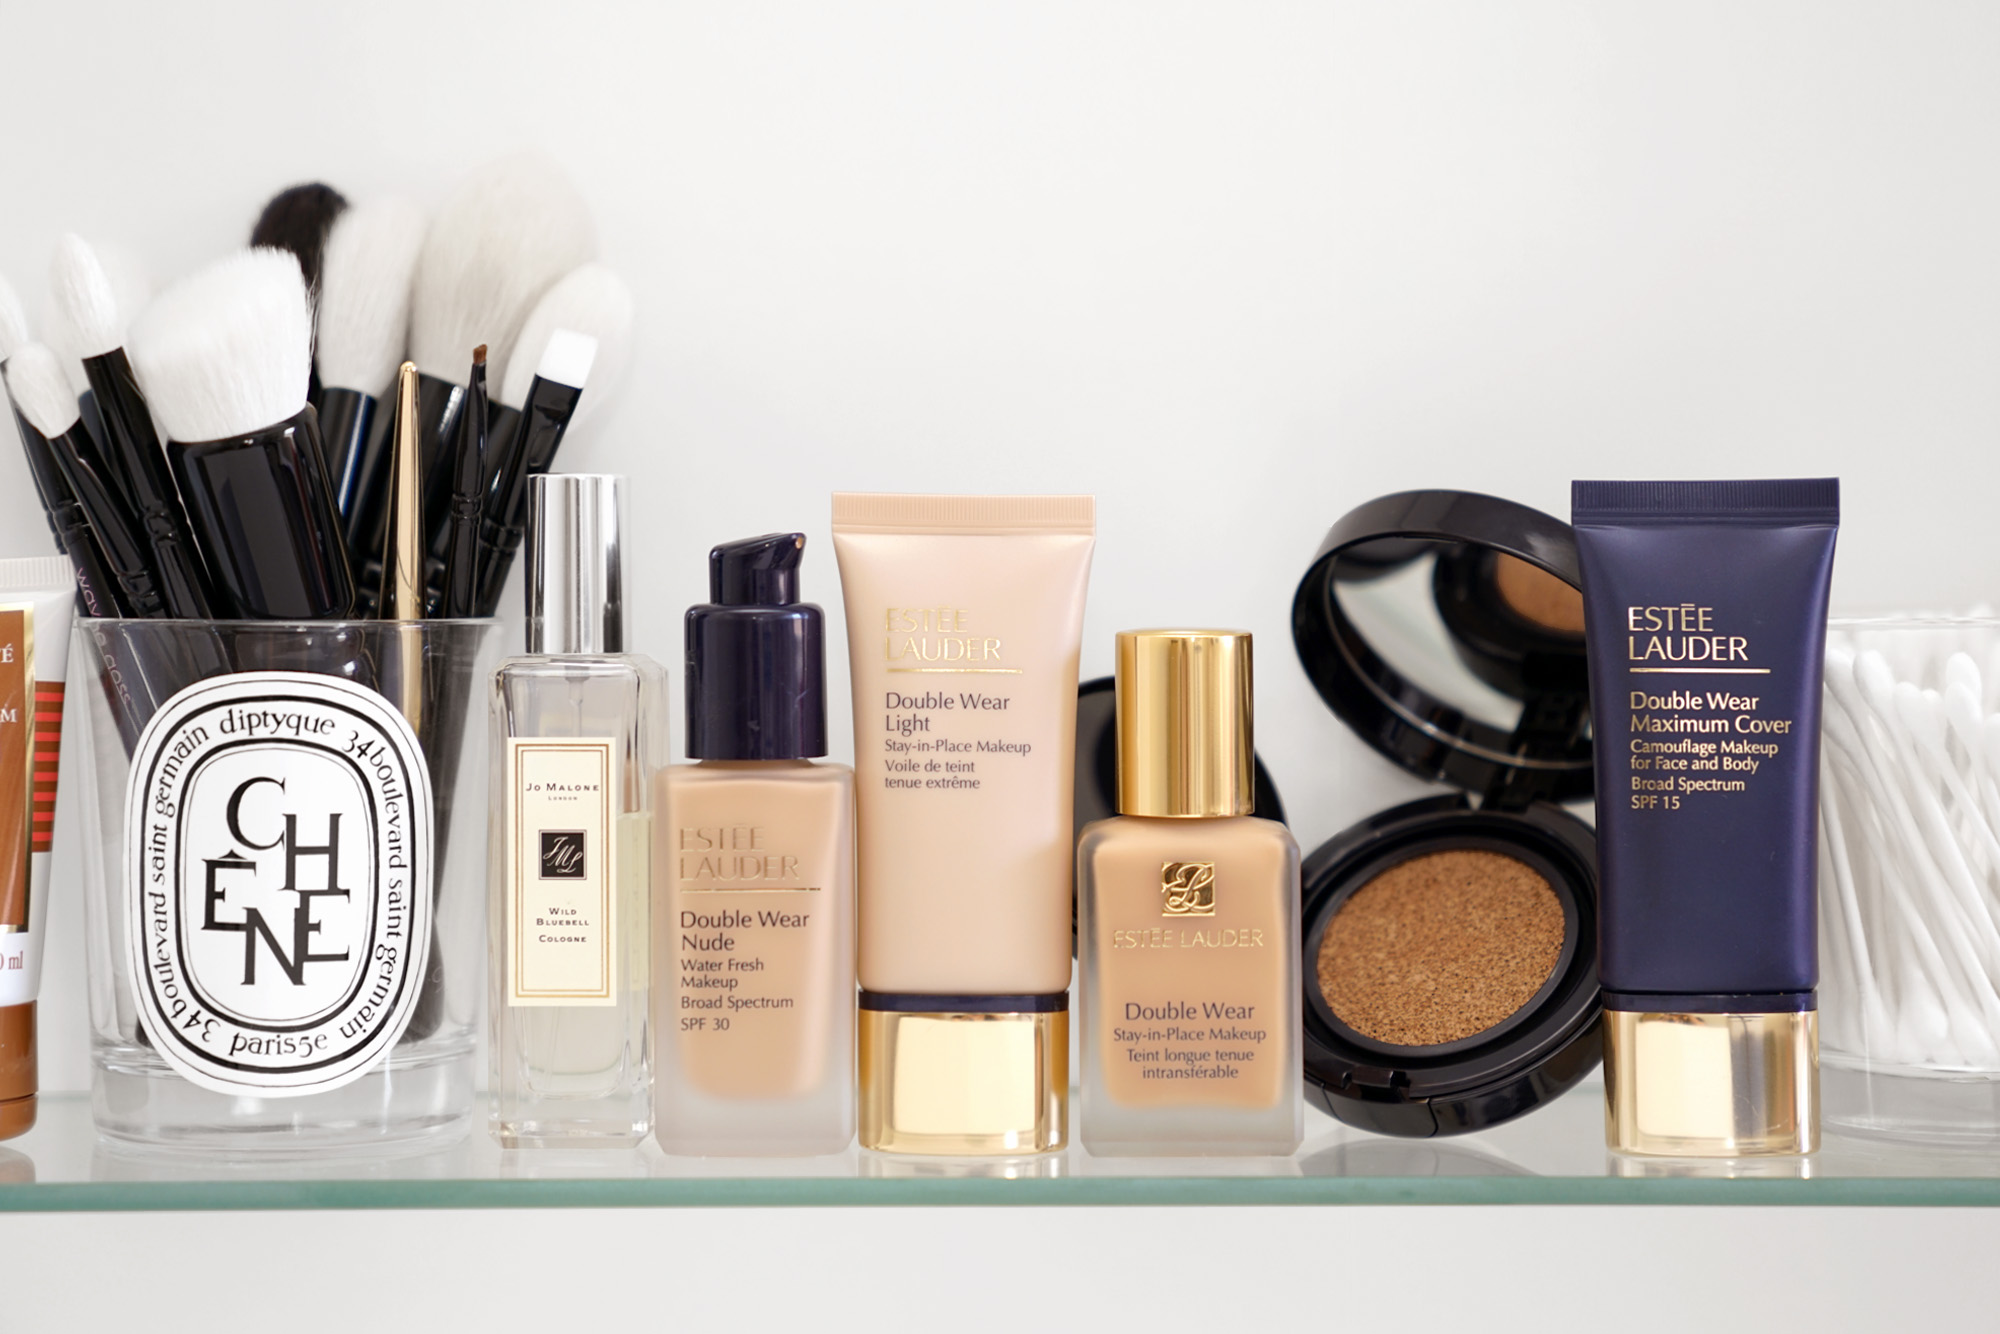 Estee Lauder Double Wear Foundation and